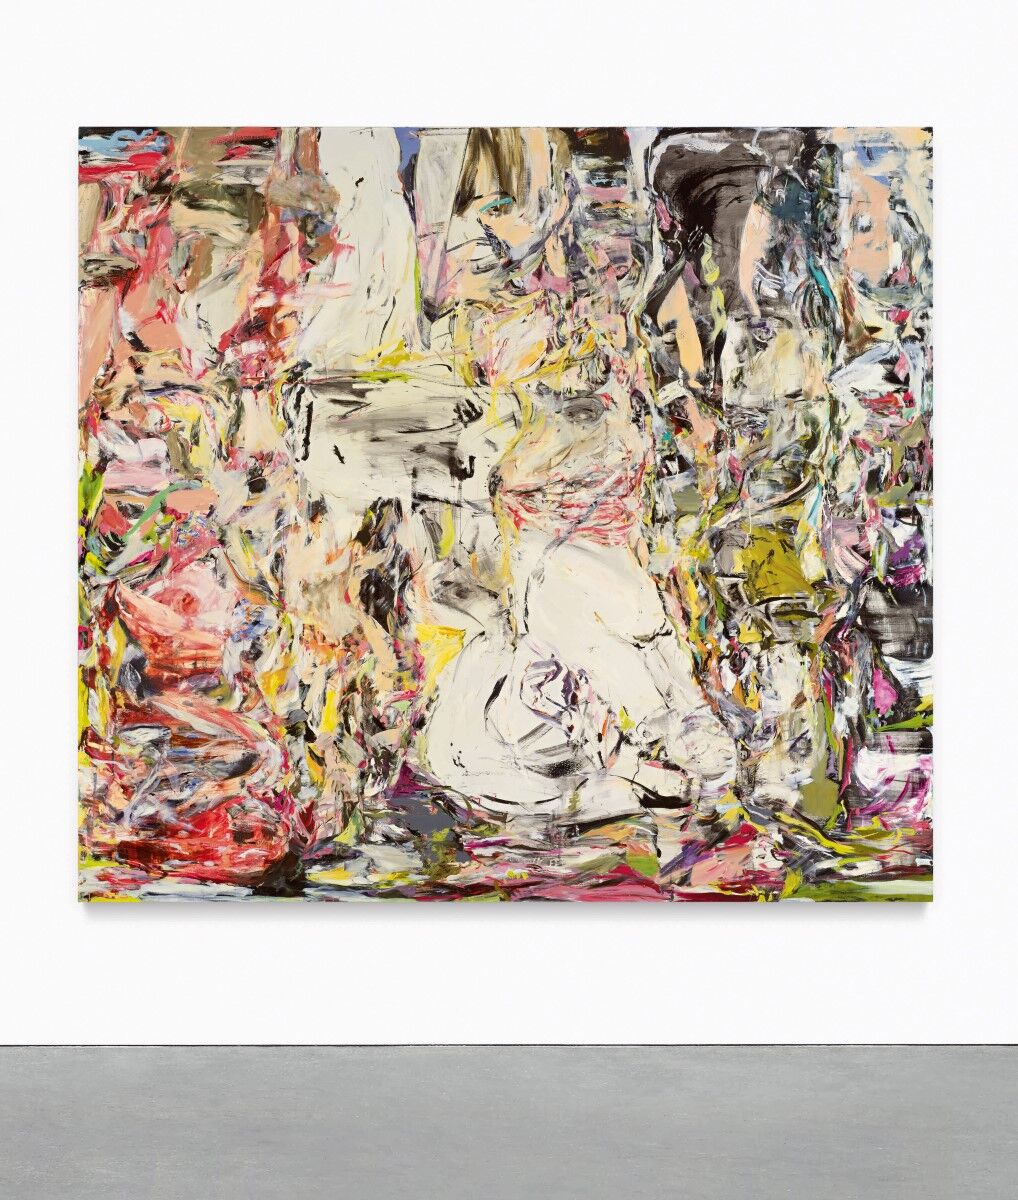 Cecily Brown, Suddenly Last Summer, 1999. Courtesy of Sotheby's